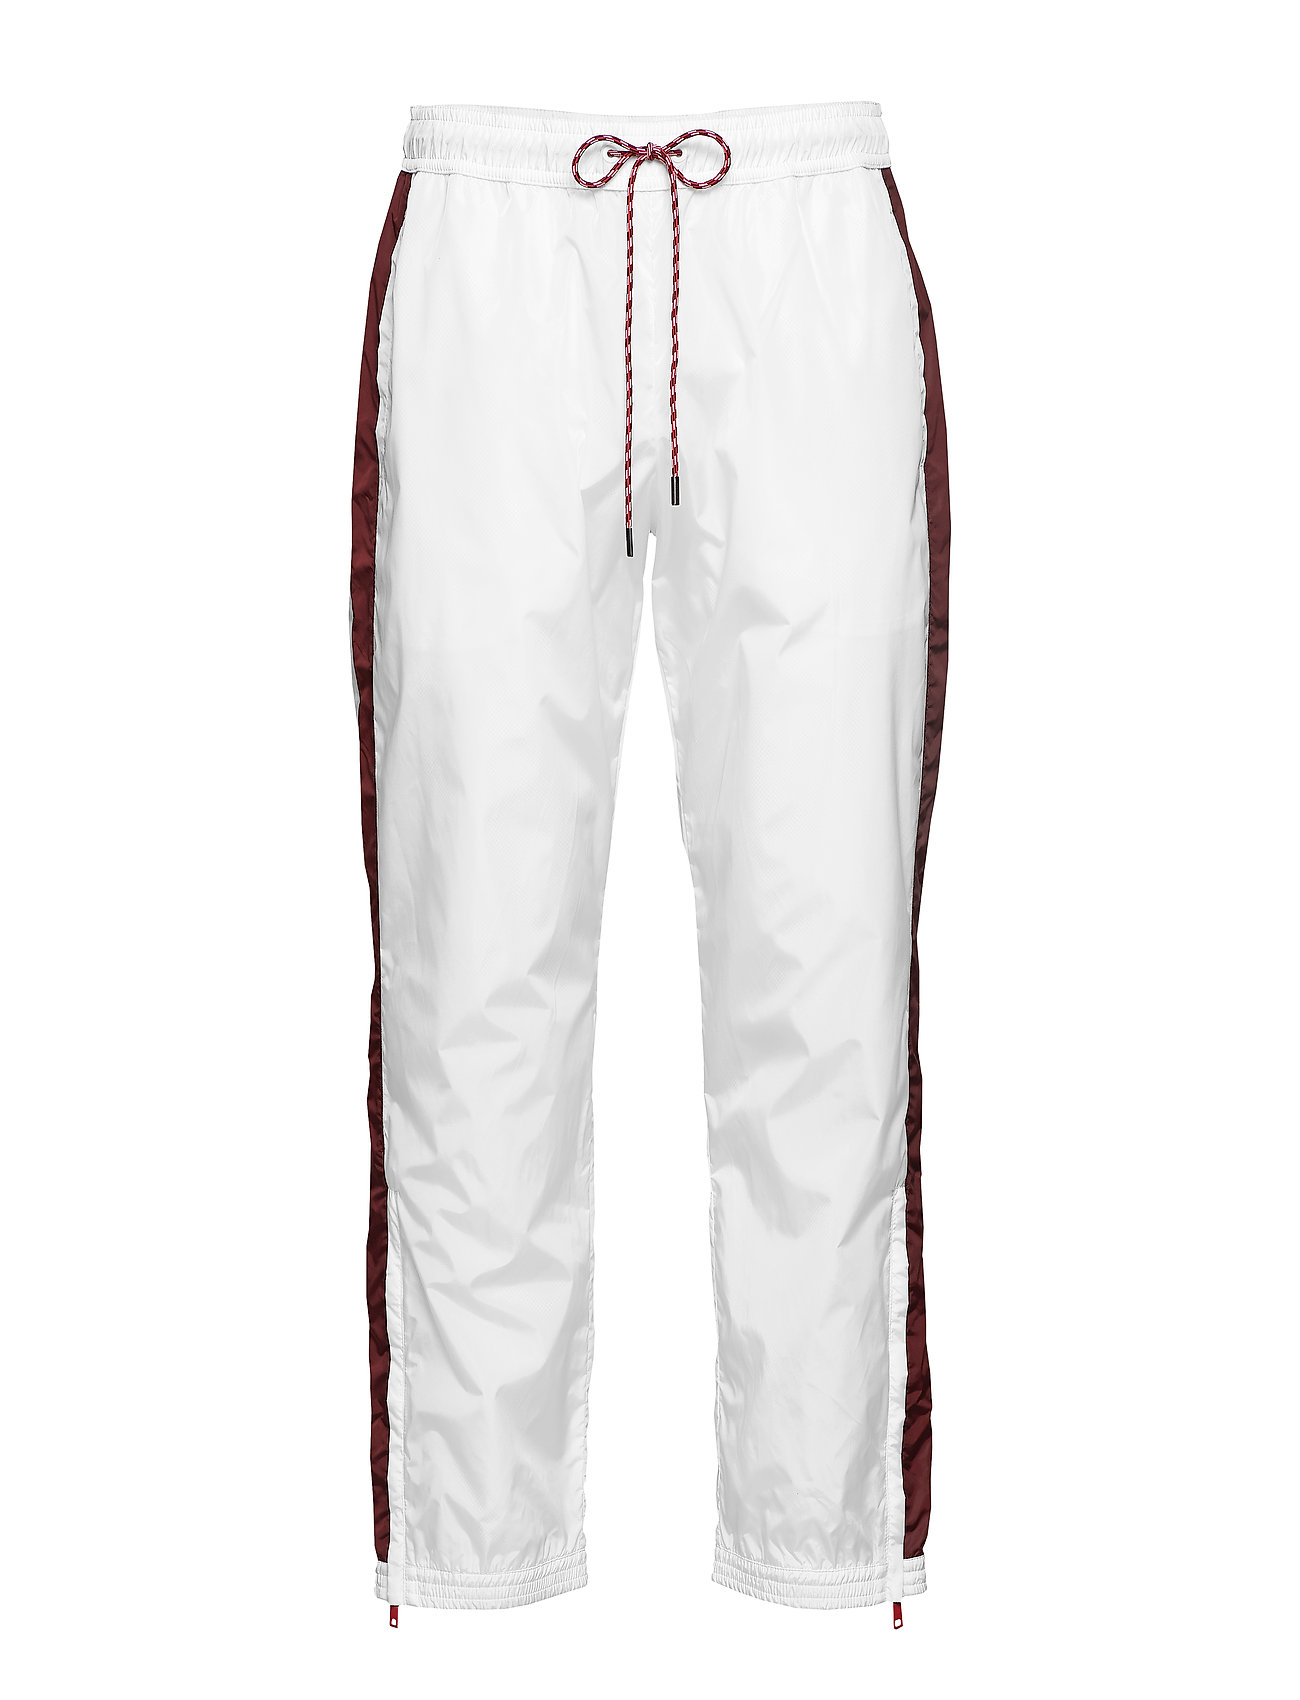 Hilfiger Collection TRACKSUIT PANTS - BRIGHT WHITE